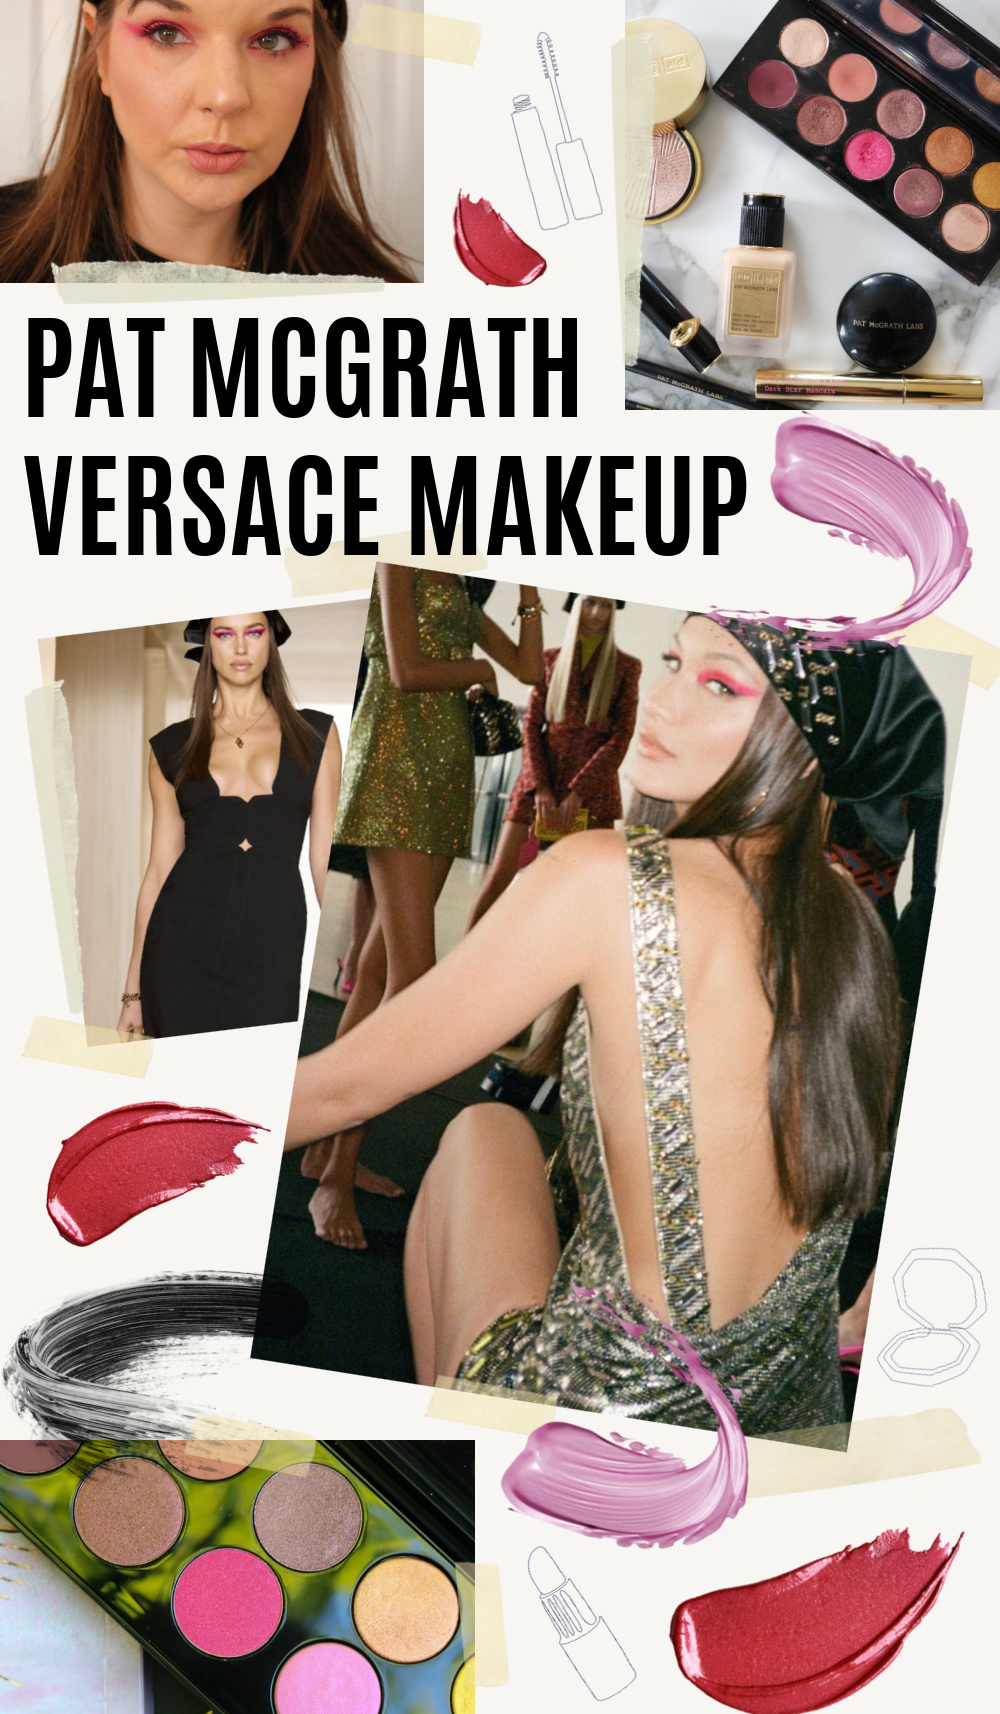 Pat McGrath Versace Makeup Look on Bella Hadid I DreaminLace.com #makeuplooks #versace #bellahadid #beautyblog #beautyblogger #fashionstyle